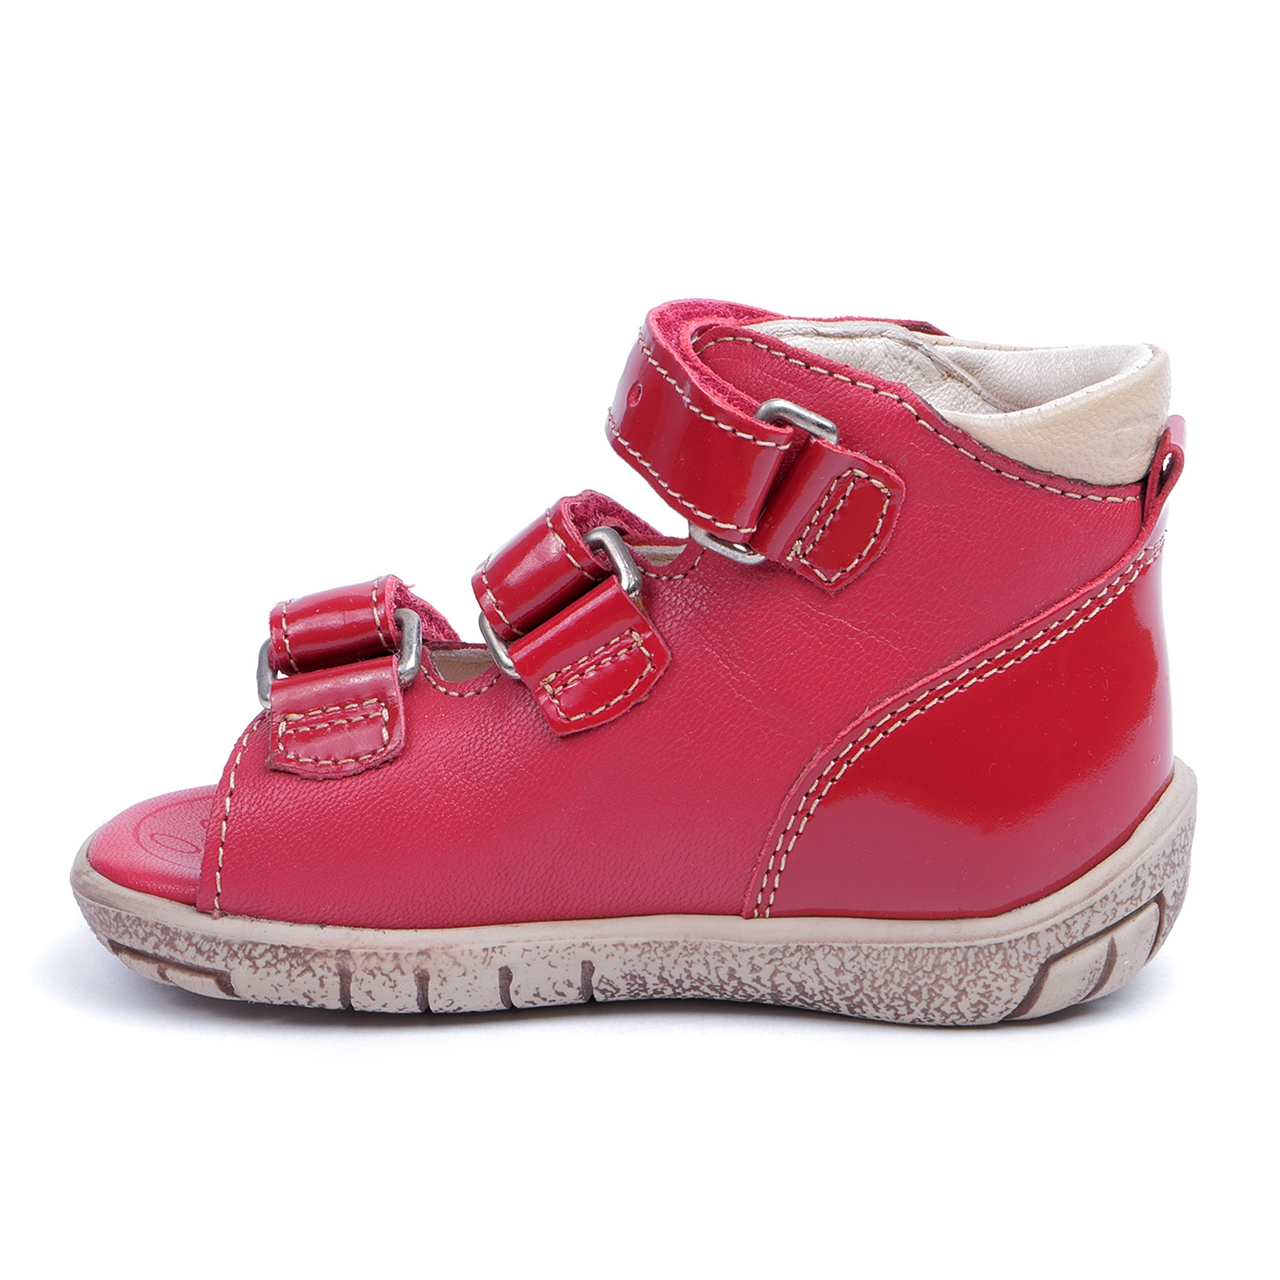 Memo Shoes. Memo Dino 3HA Red Infant & Toddler Girl & Boy ...